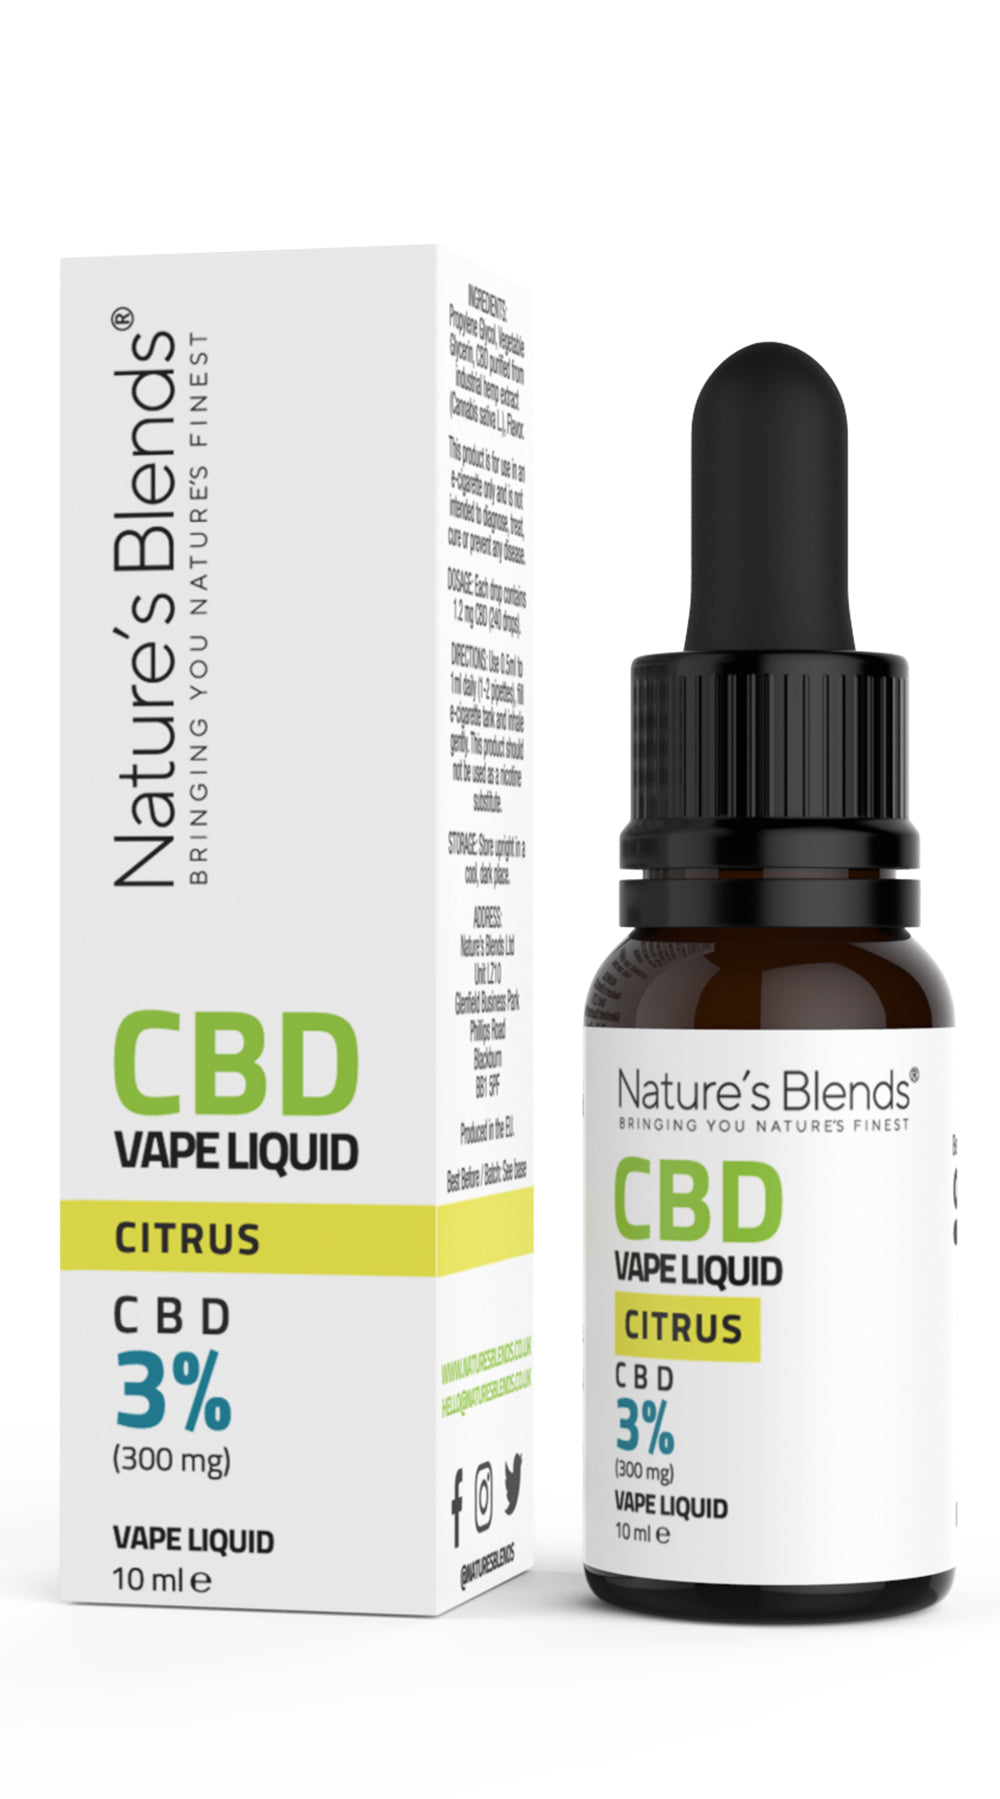 A 10ml bottle of 300mg cbd vape citrus flavour along side natures blends packaging